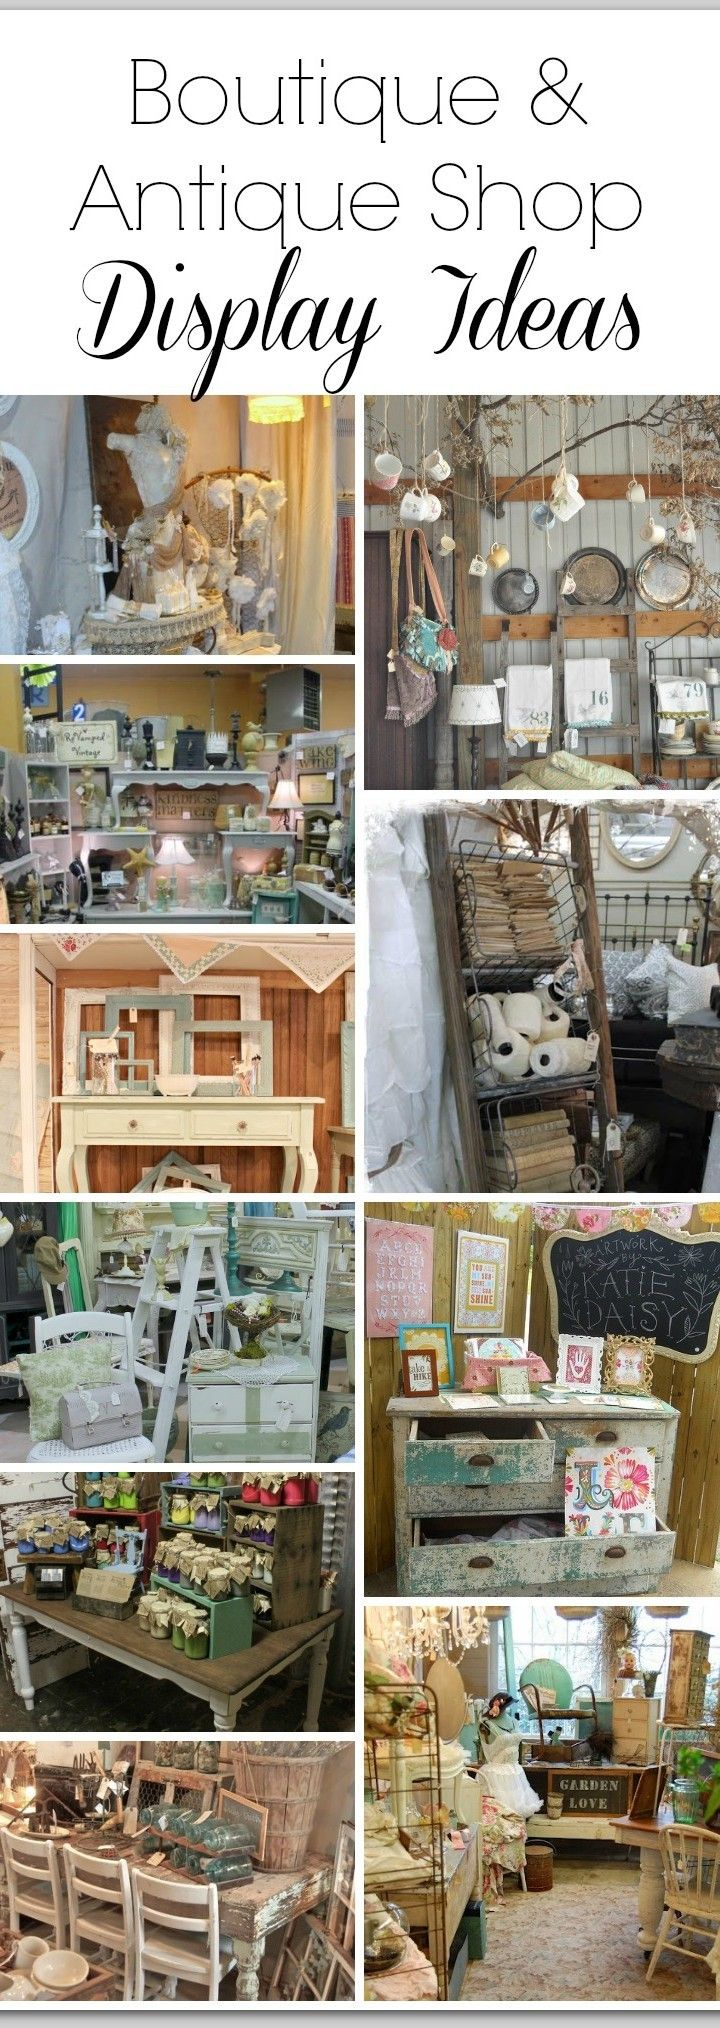 Best 25+ Gift shops ideas on Pinterest | Store design, Retail ...